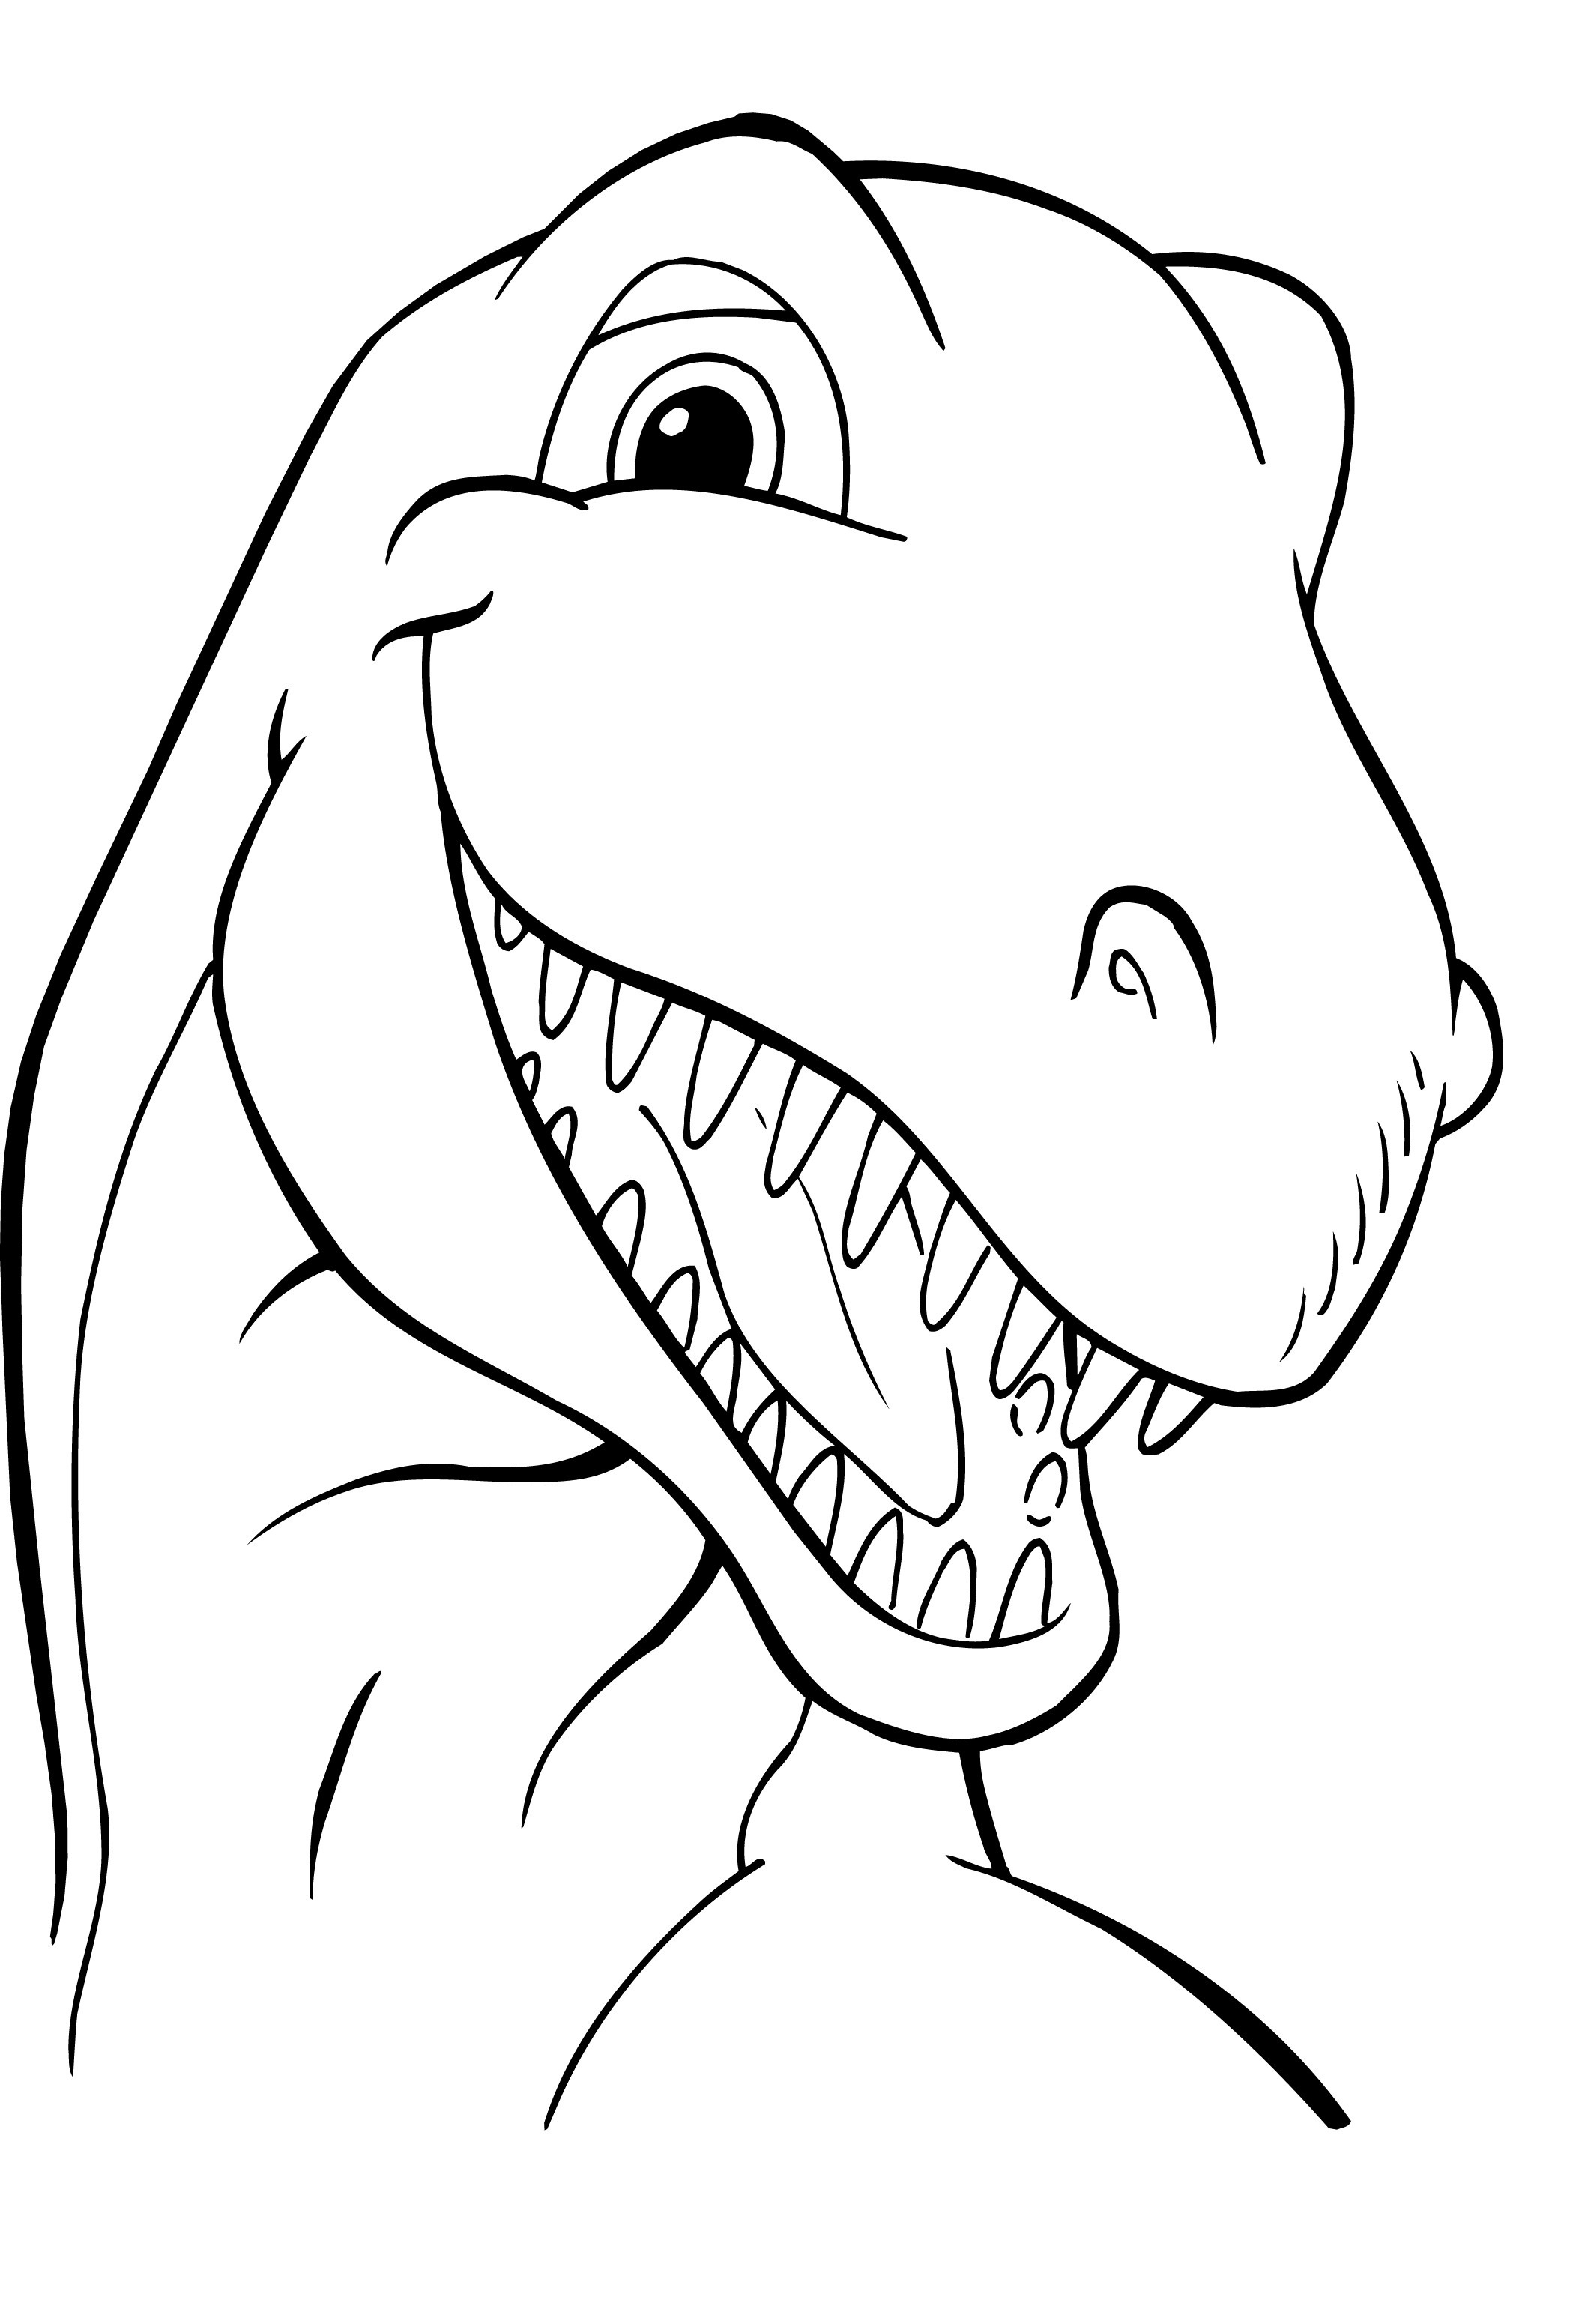 free printable dinosaur coloring pages free printable dinosaur coloring pages dinosaur printable free pages coloring